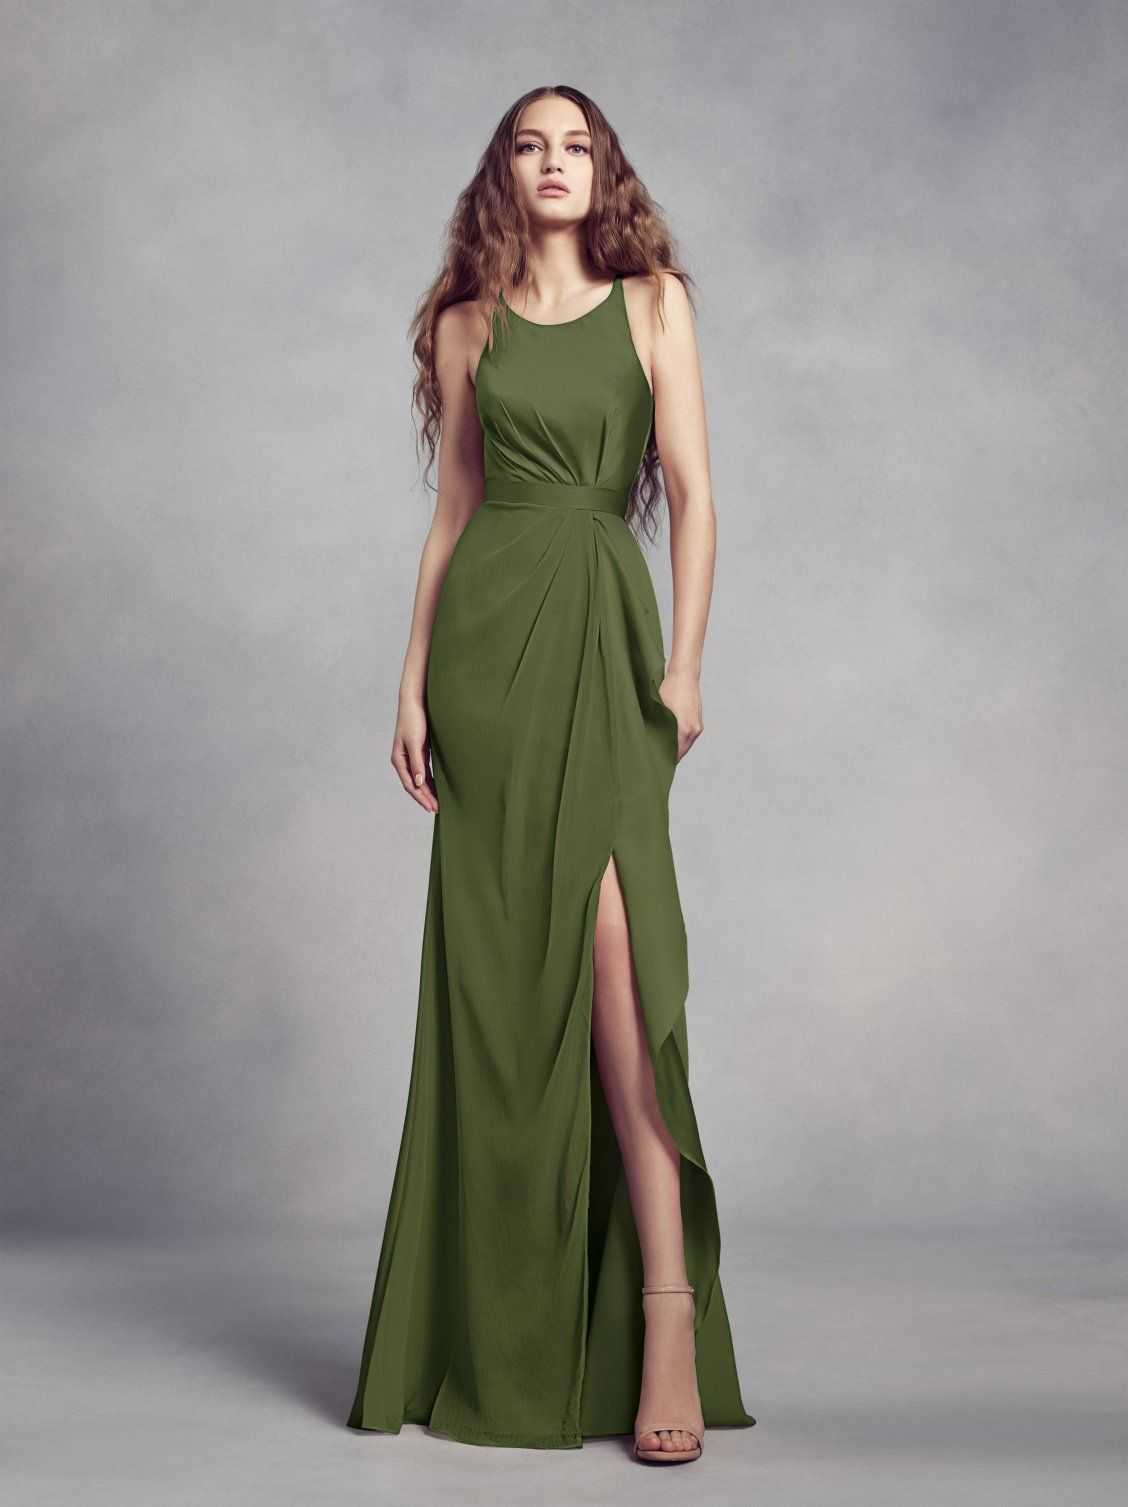 White by vera wang bridesmaid dress style vw in olive green